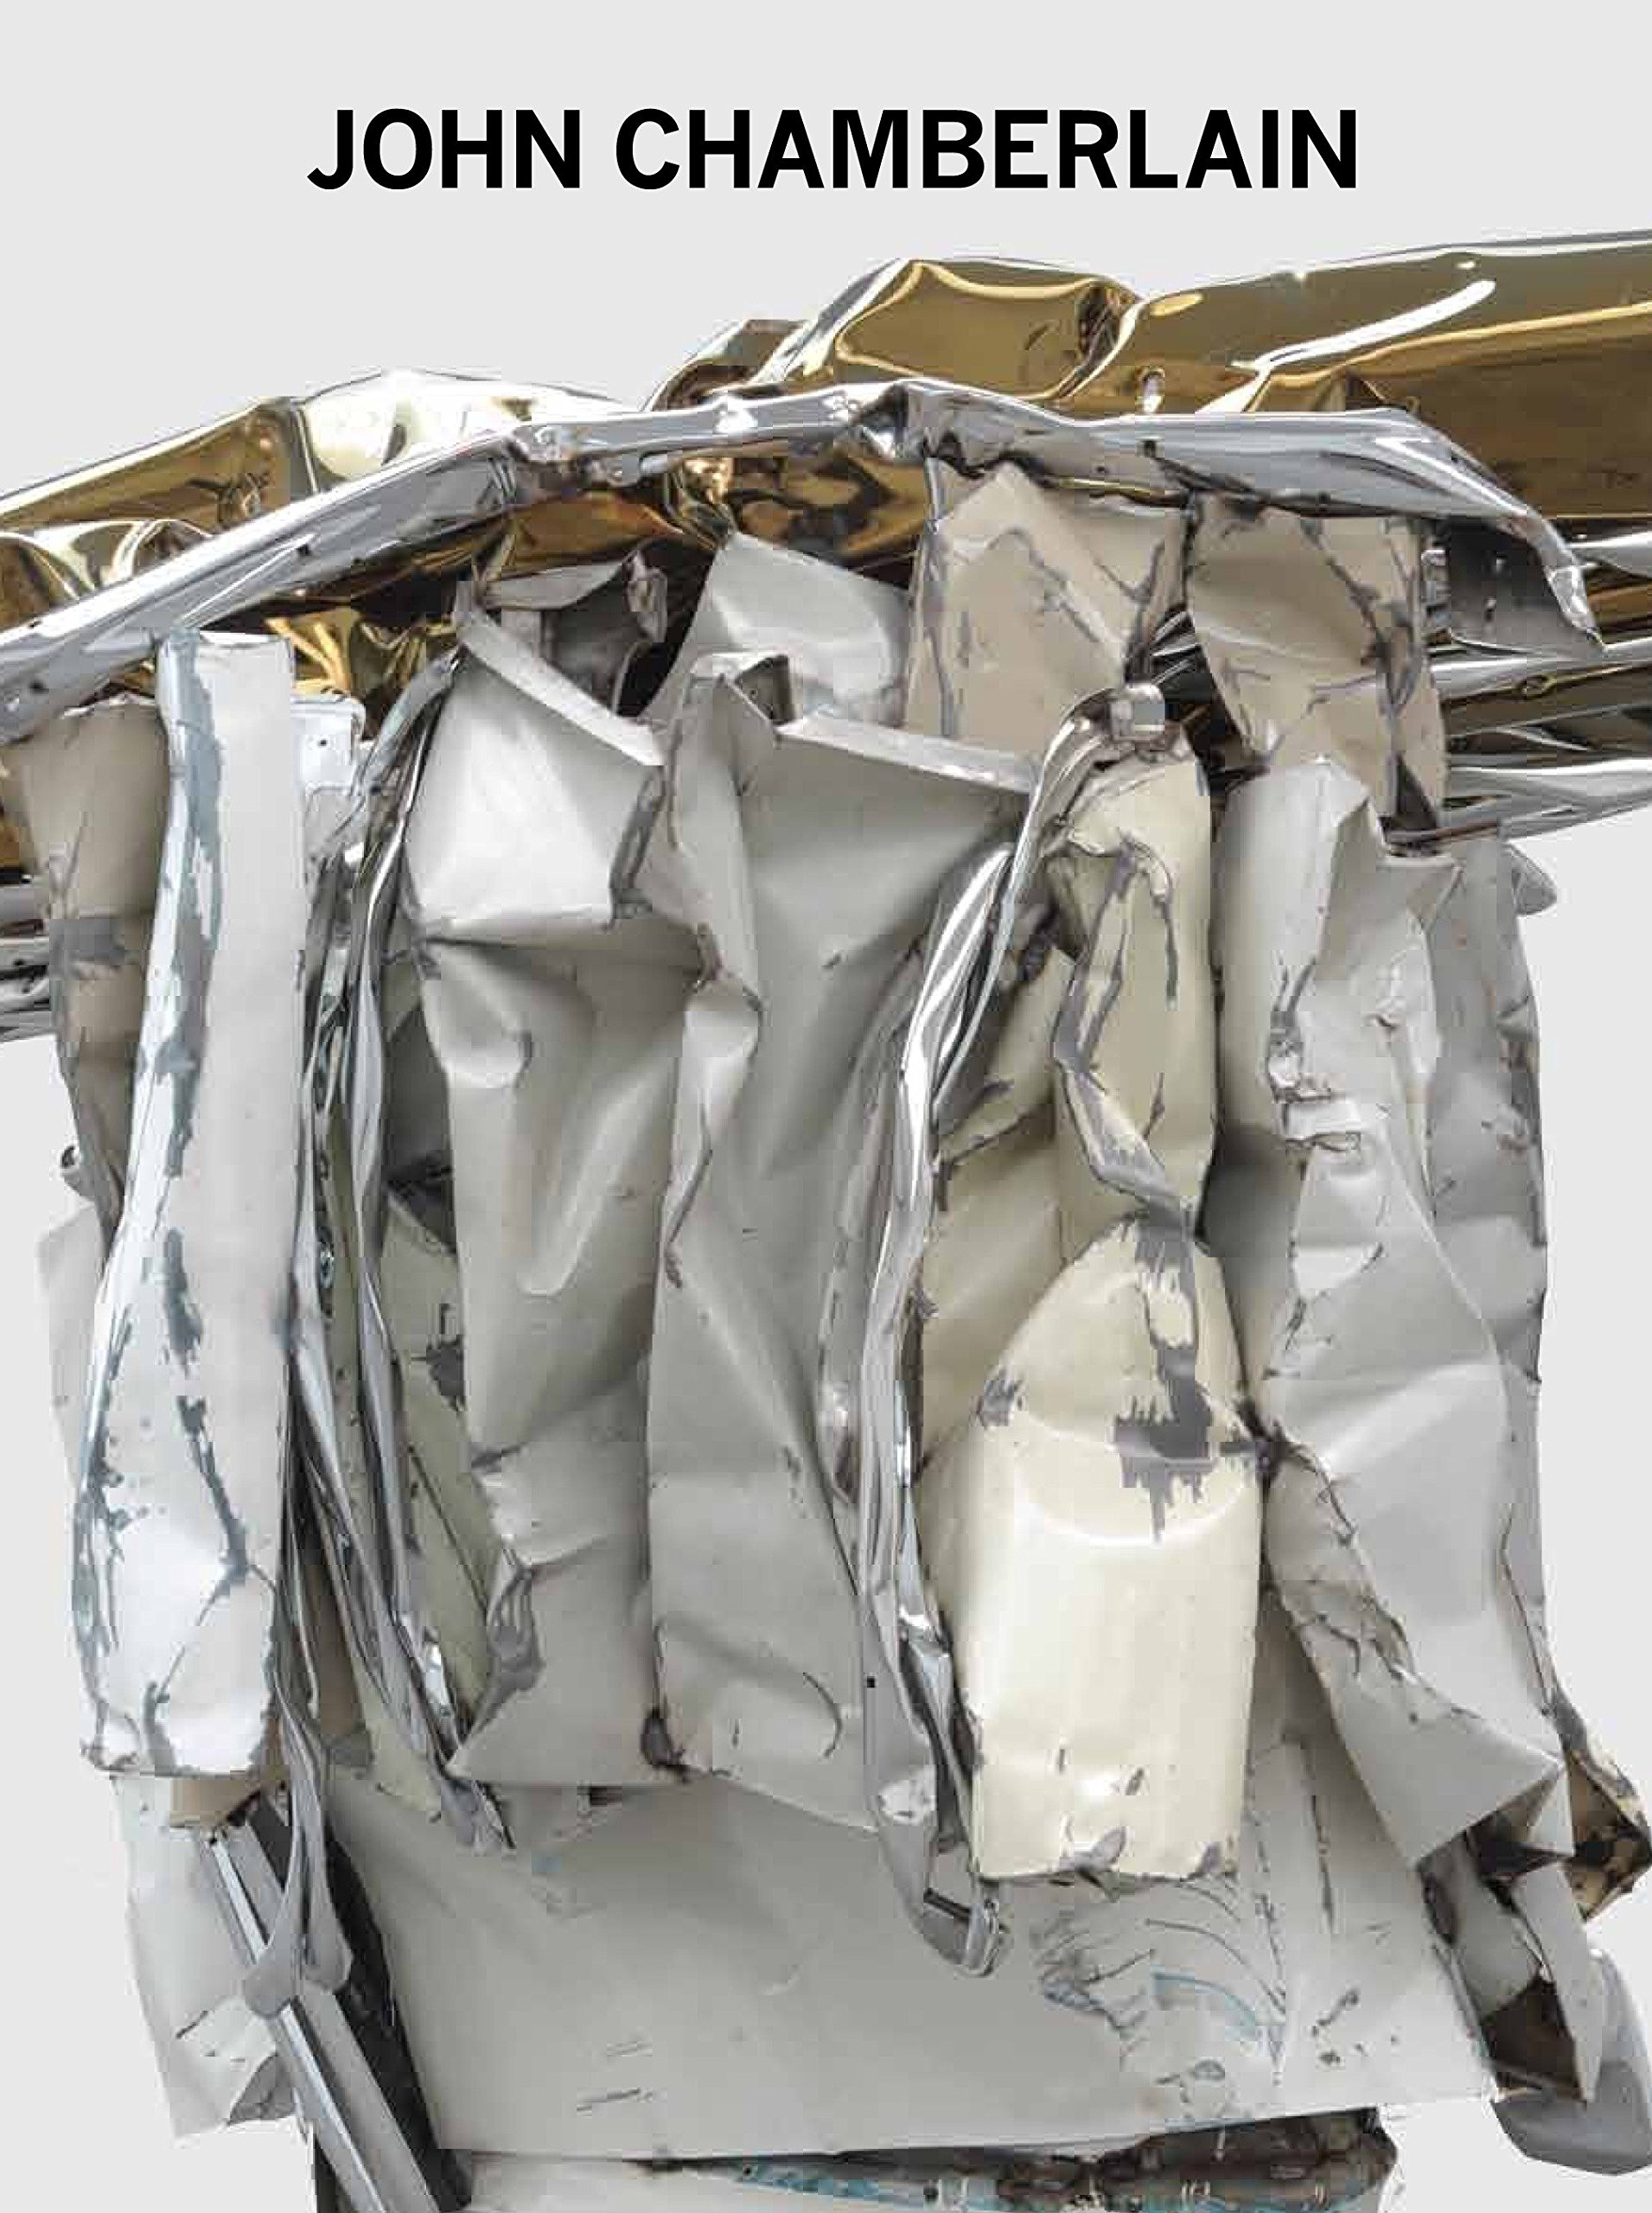 New sculptures  by Thomas Crow   John Chamberlain: New Sculpture  is published in conjunction with two recent exhibitions by the venerable sculptor at Gagosian Gallery's New York and London venues.